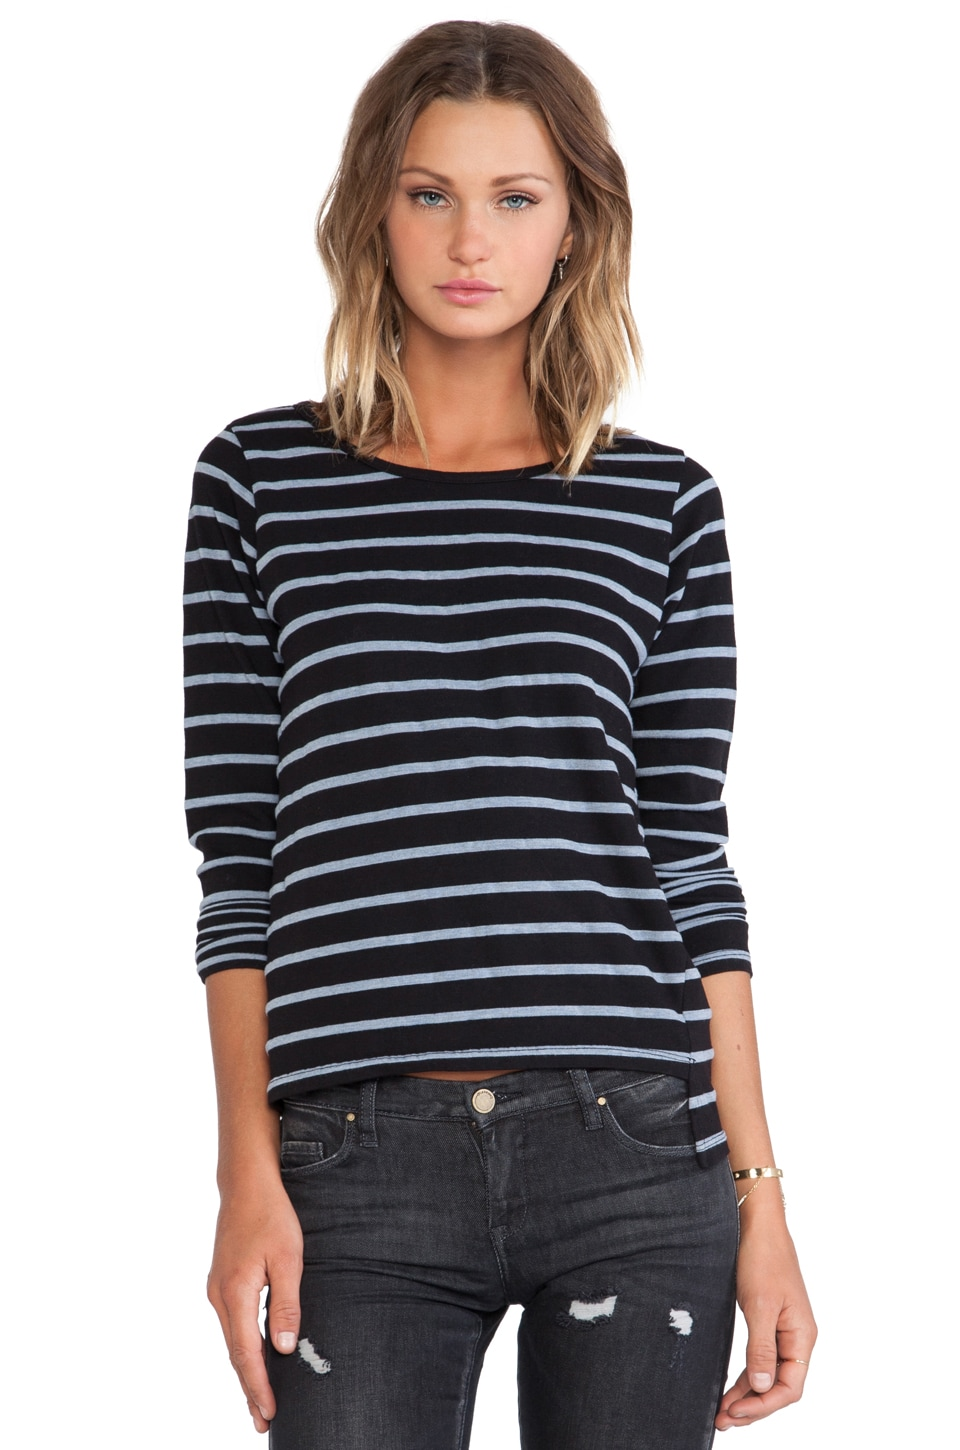 MONROW Denim Stripes French Tee in Black